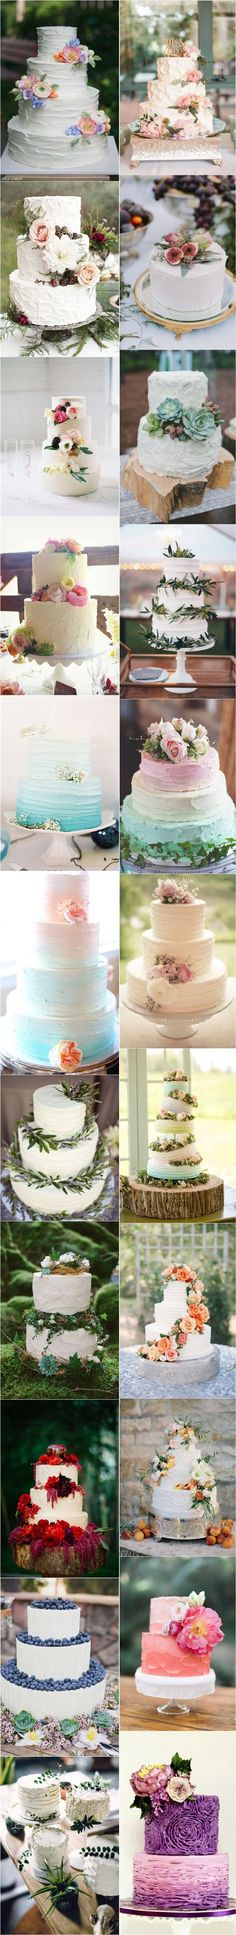 22 unique buttercream wedding cakes